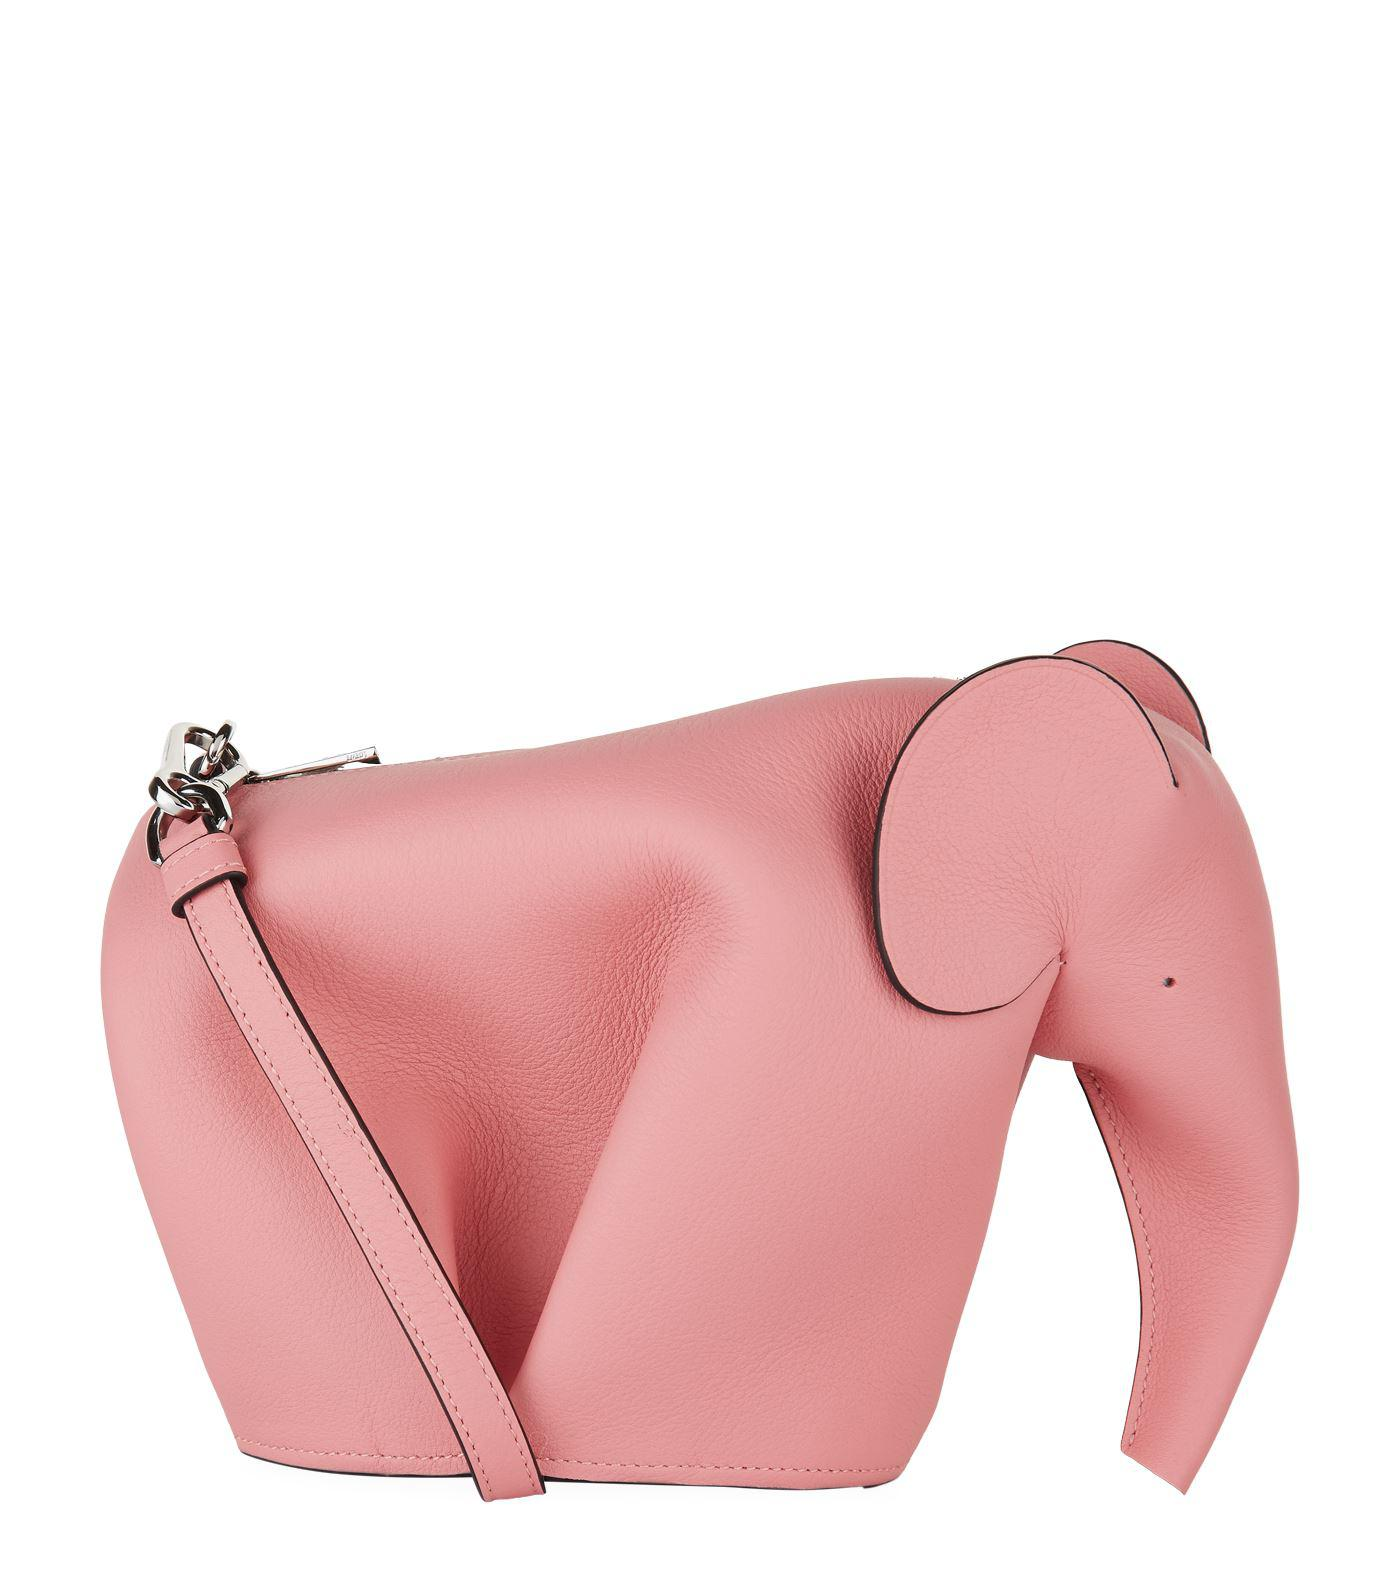 4a1ad4e9d Lyst - Loewe Mini Leather Elephant Bag in Pink - Save 11%